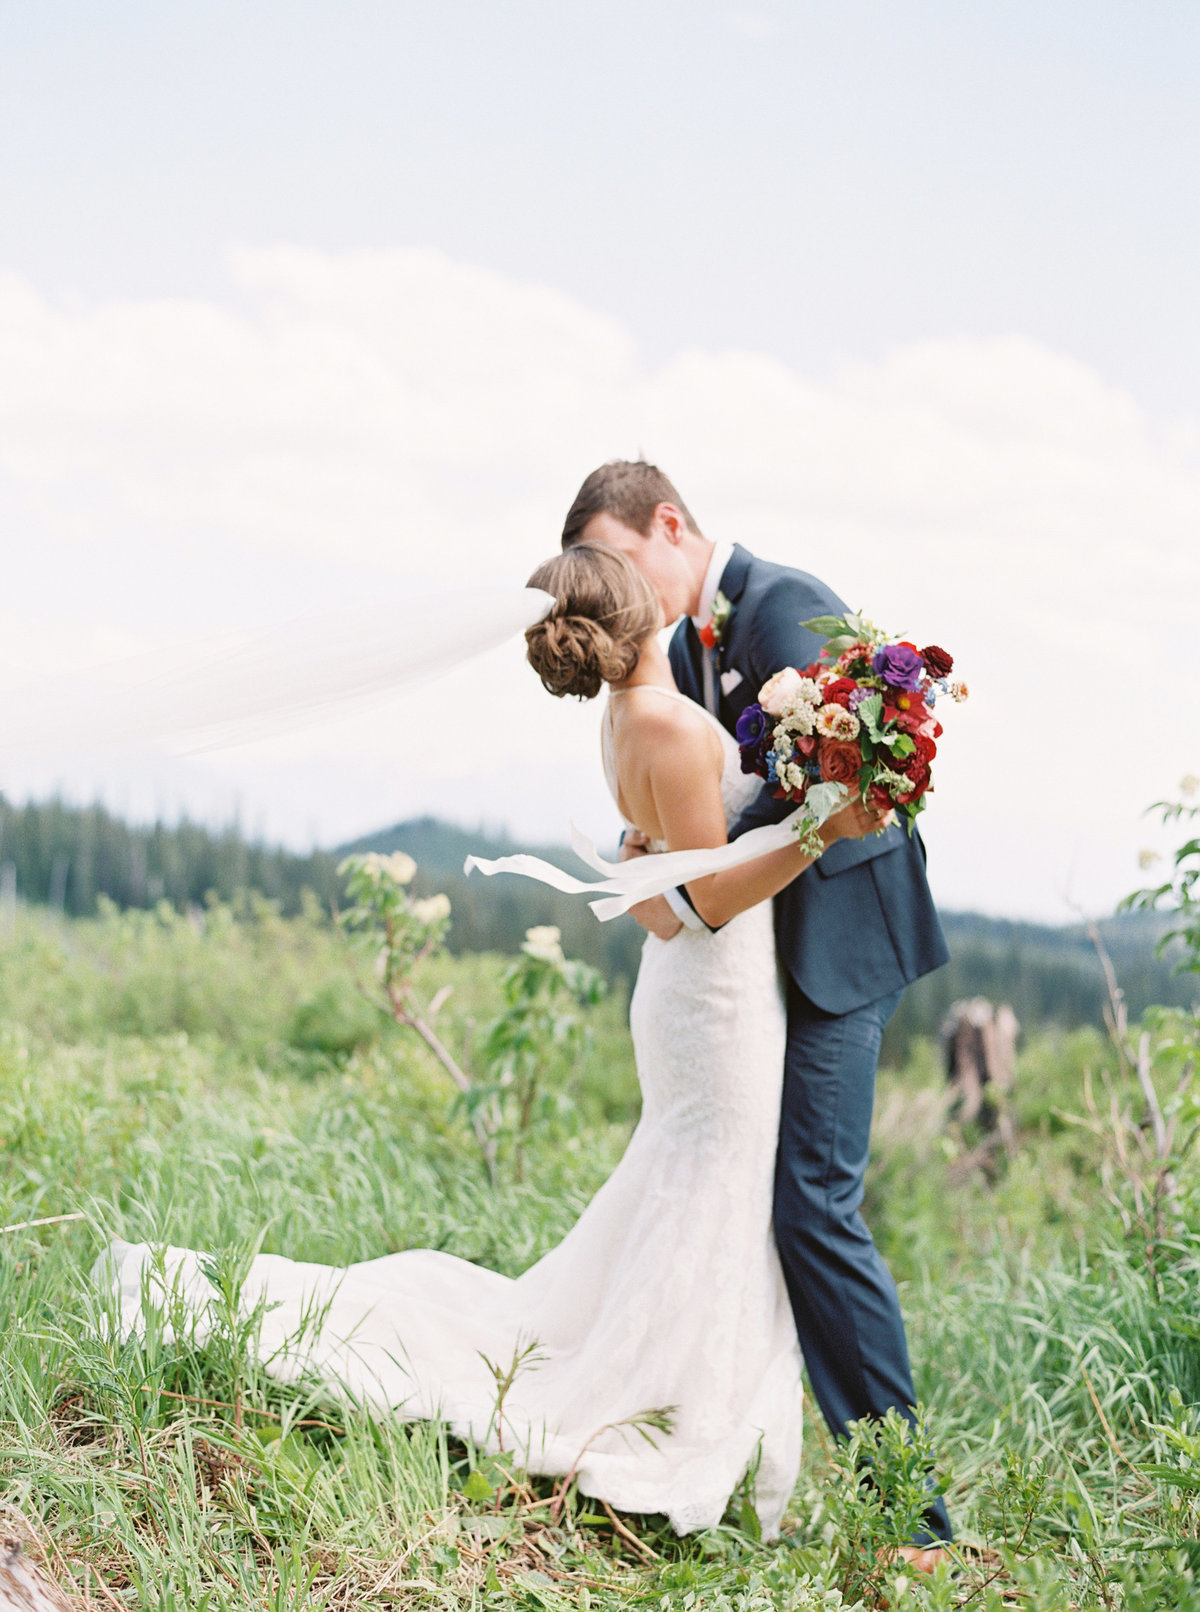 KateandMike_Wedding_0048